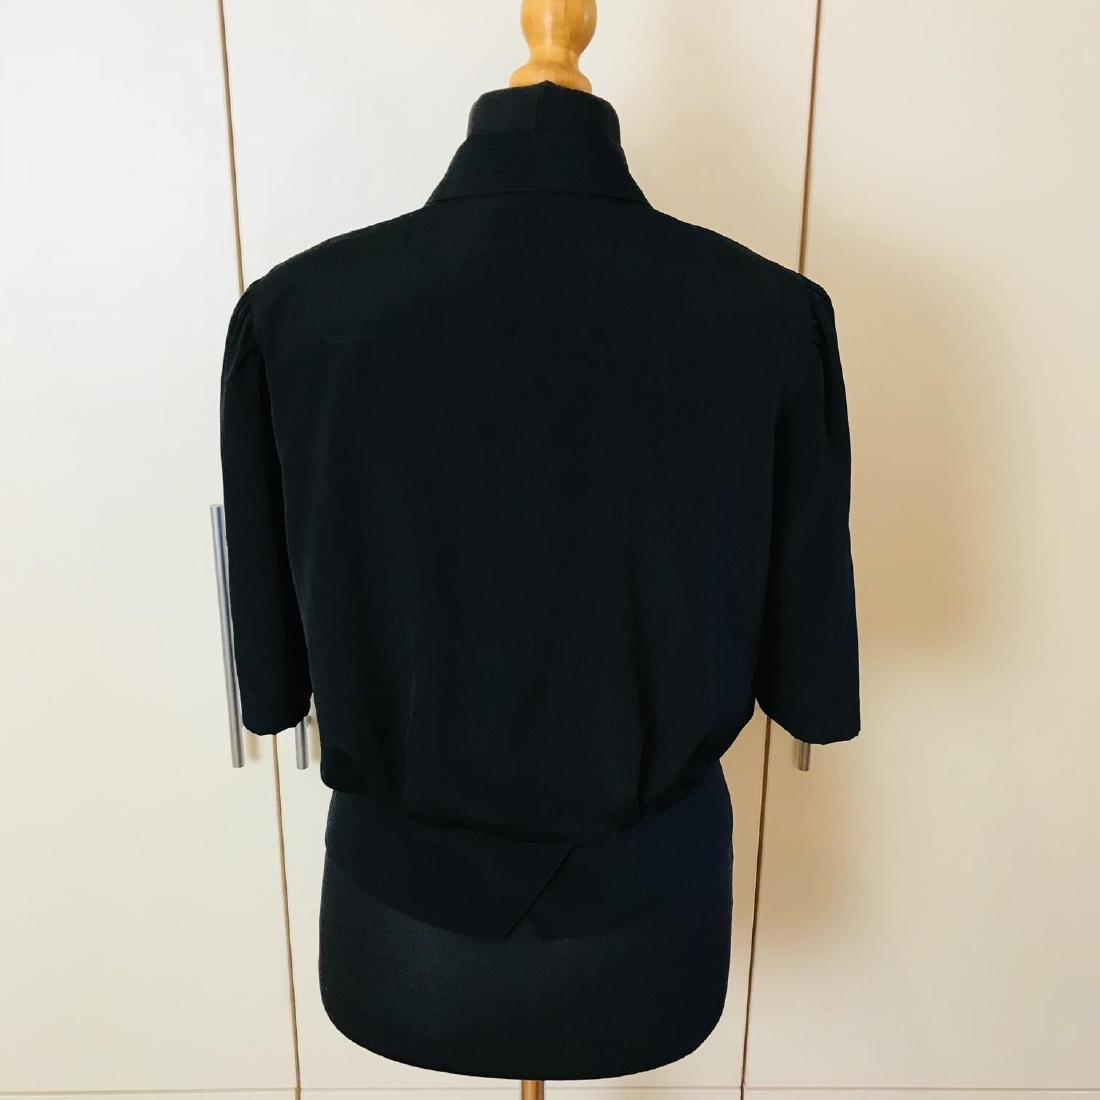 Vintage Women's Black Blouse Shirt Top Size EUR 40 US - 4